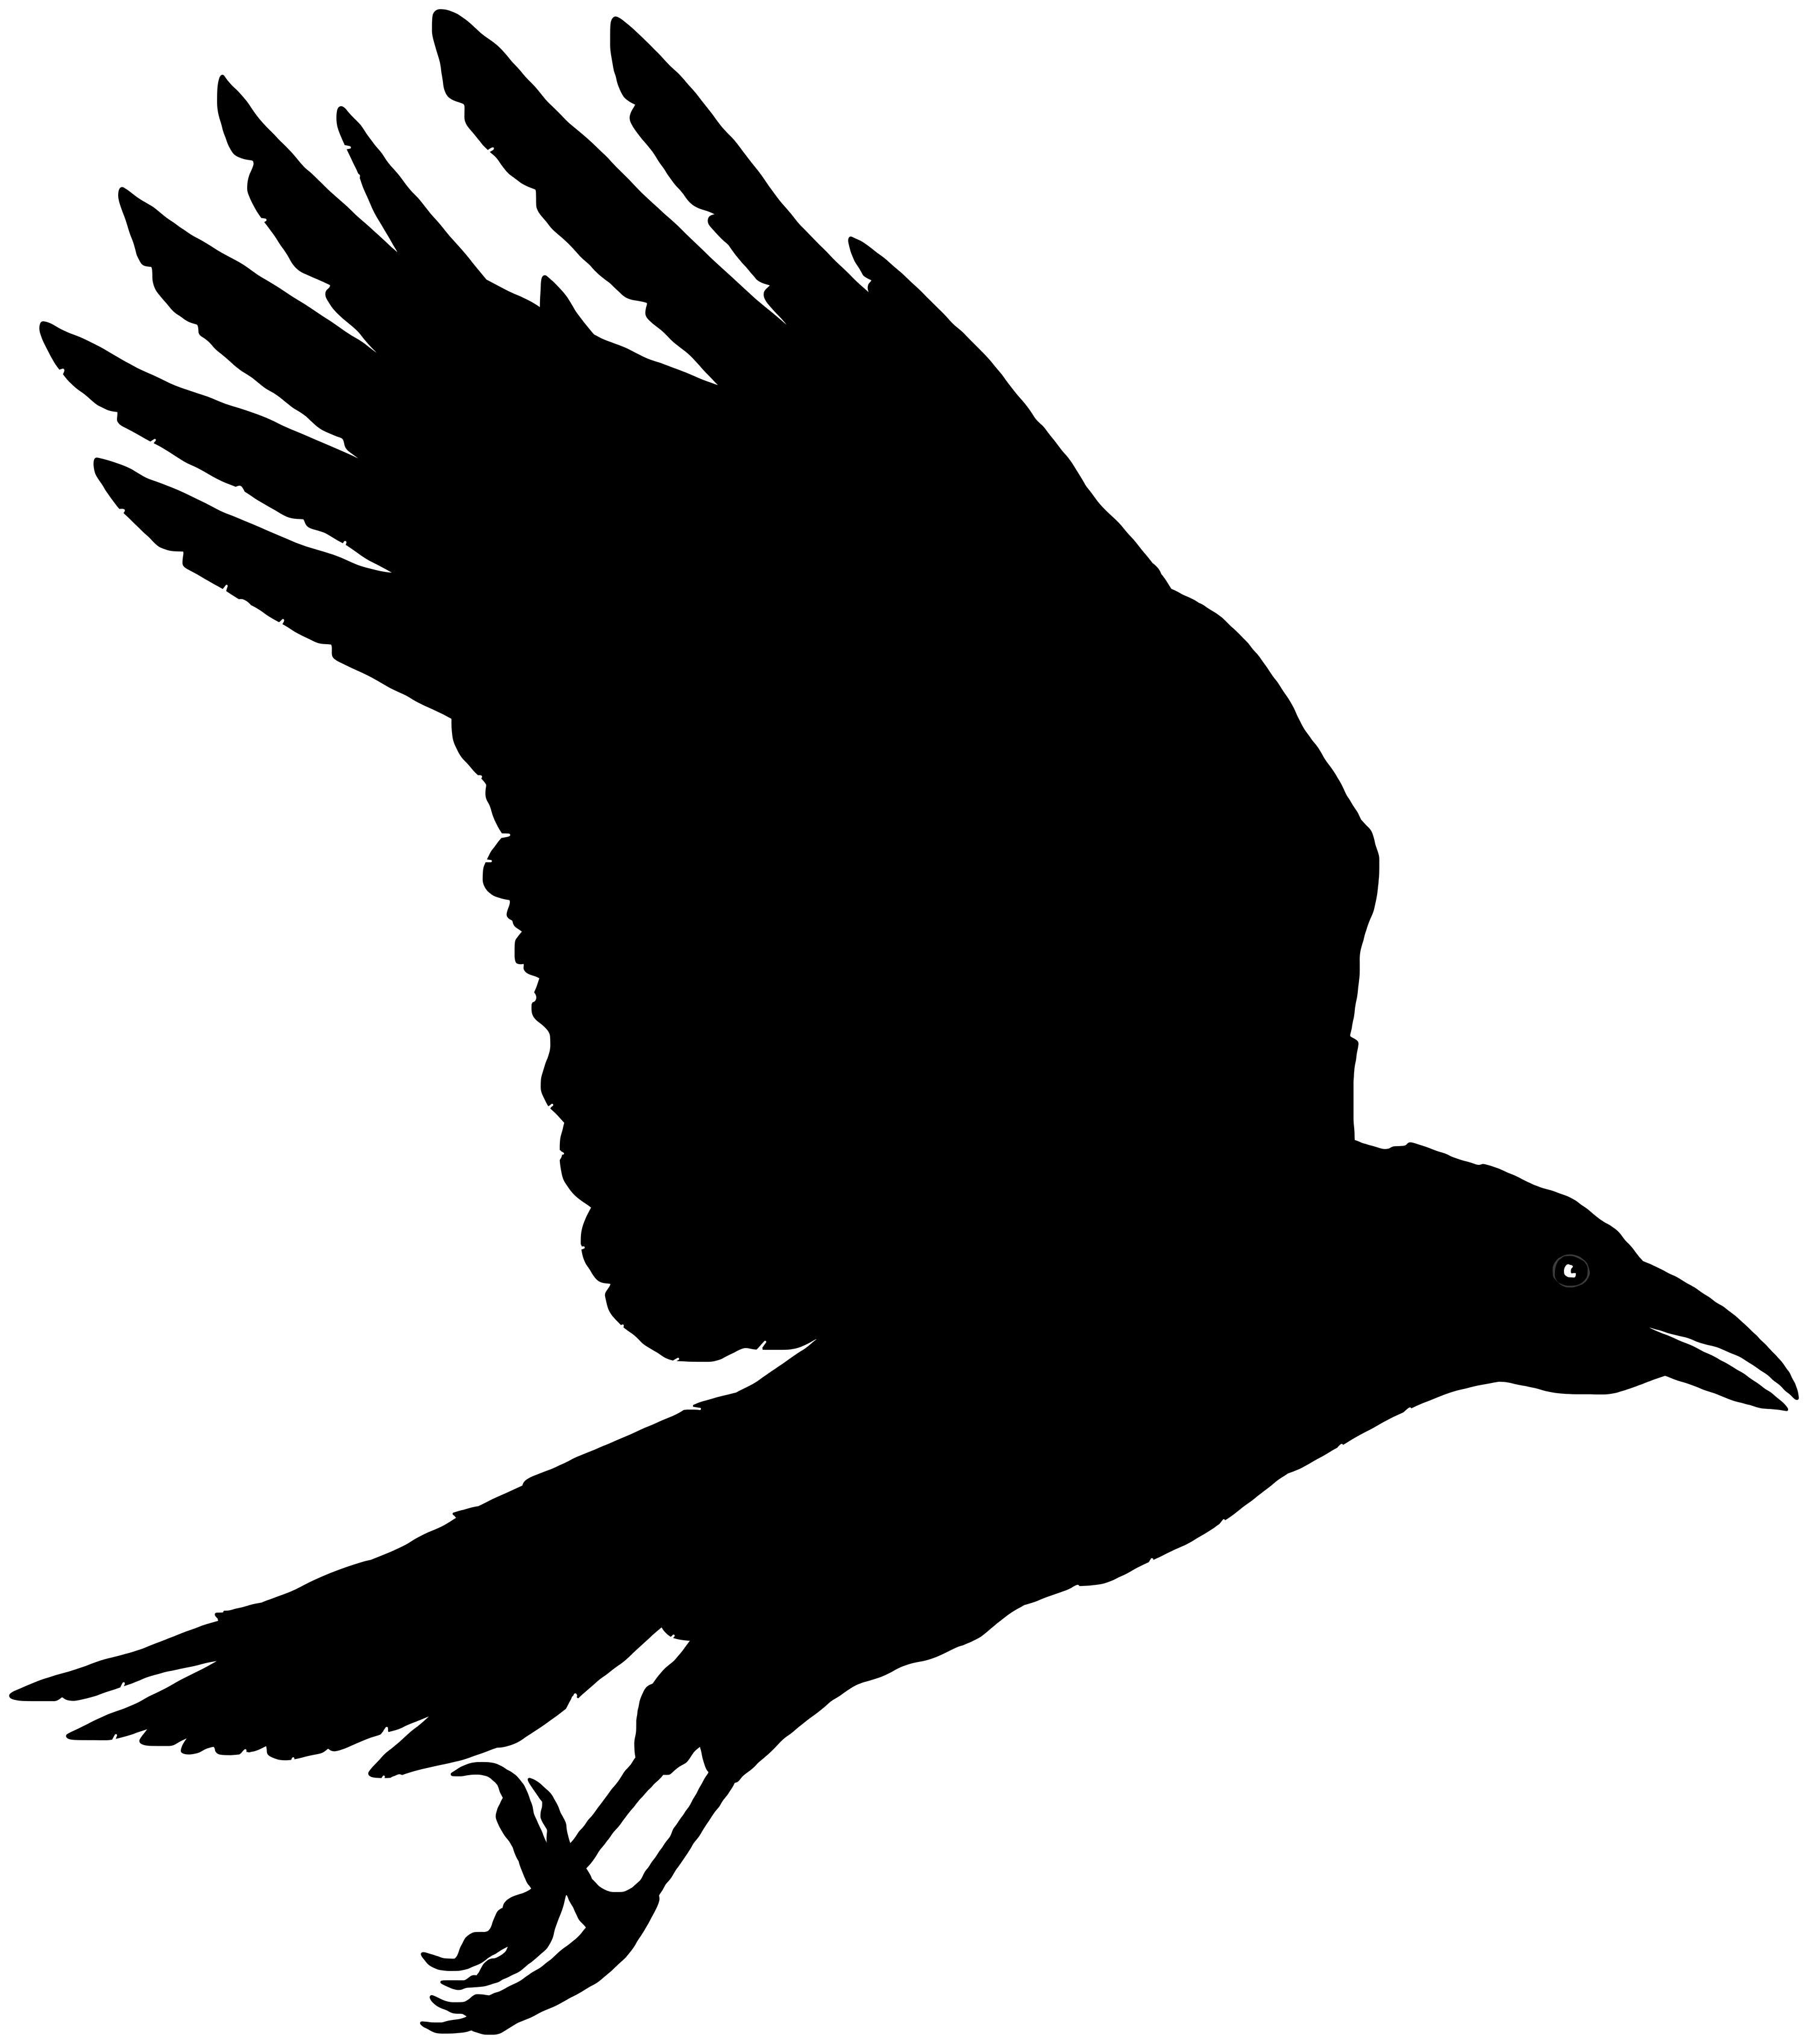 Raven clipart animated #15